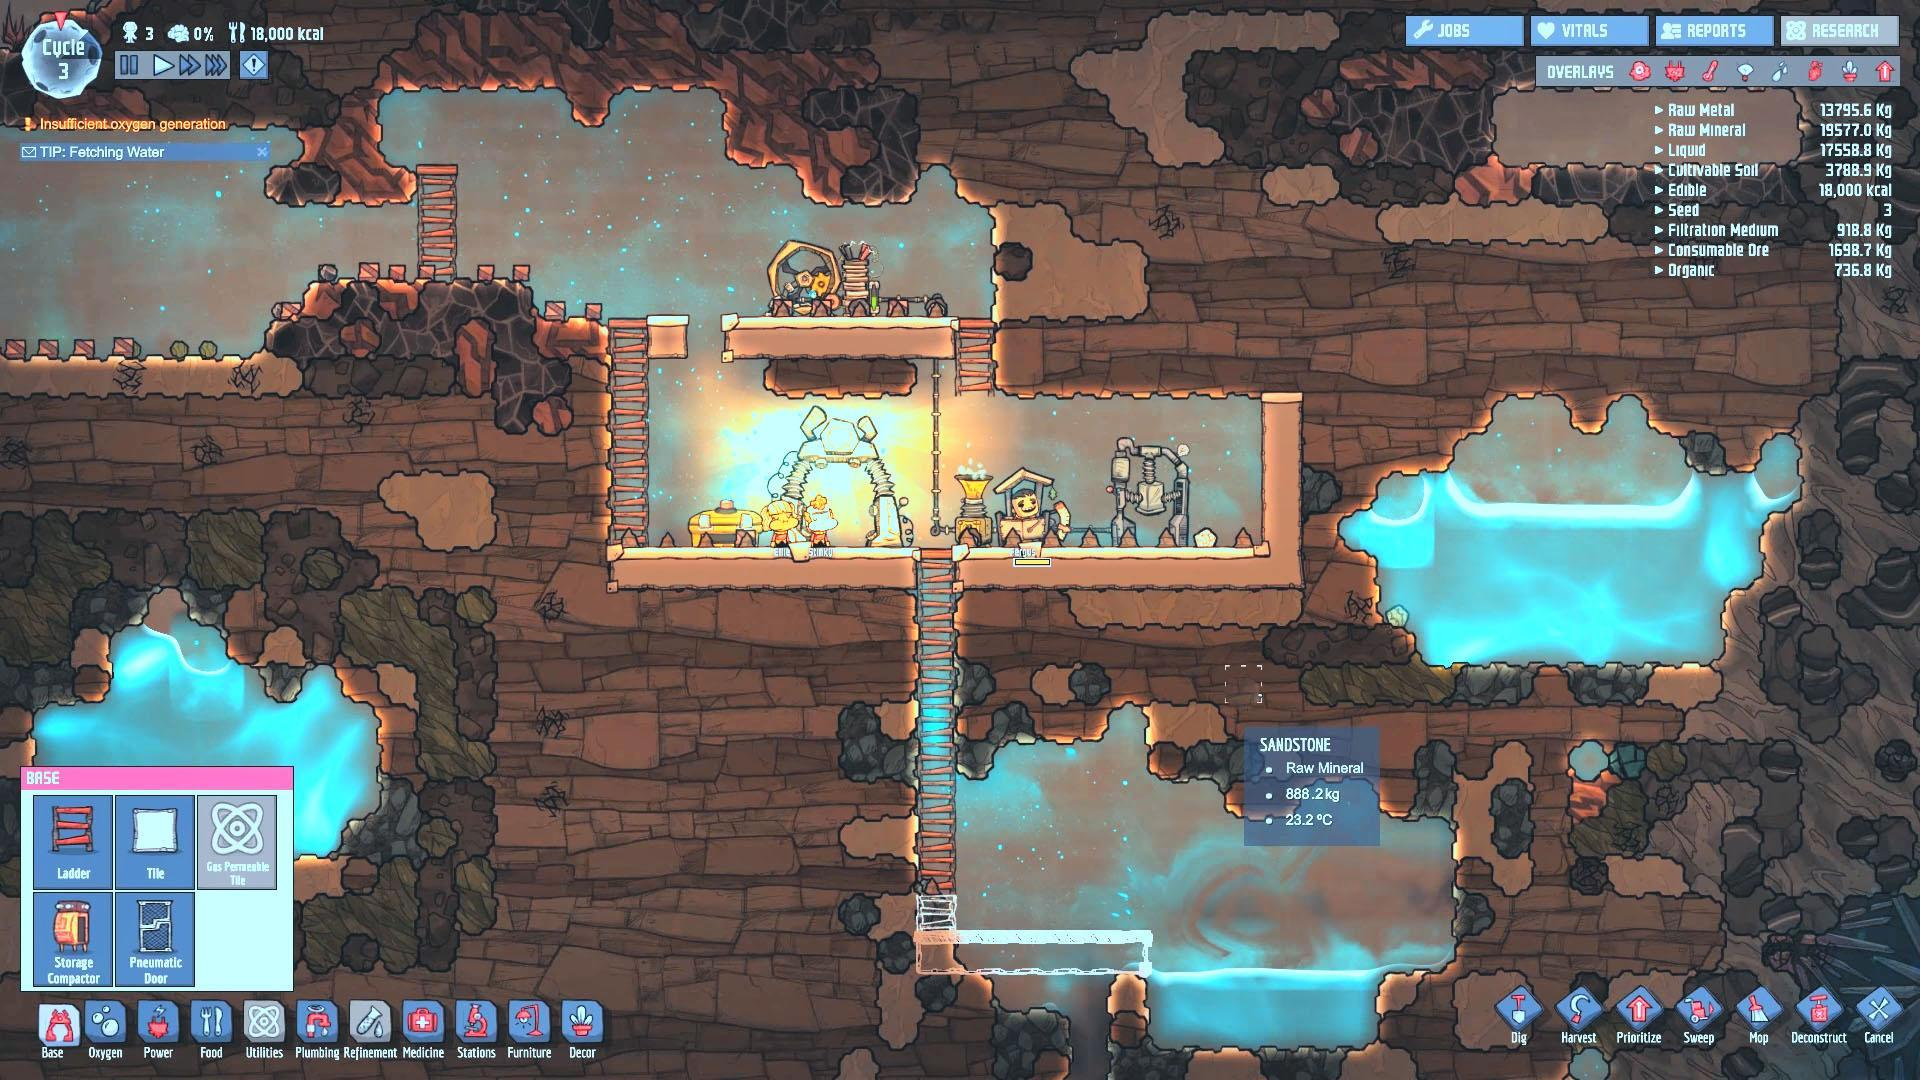 Oxygen Do Not Included Colony for Android - APK Download